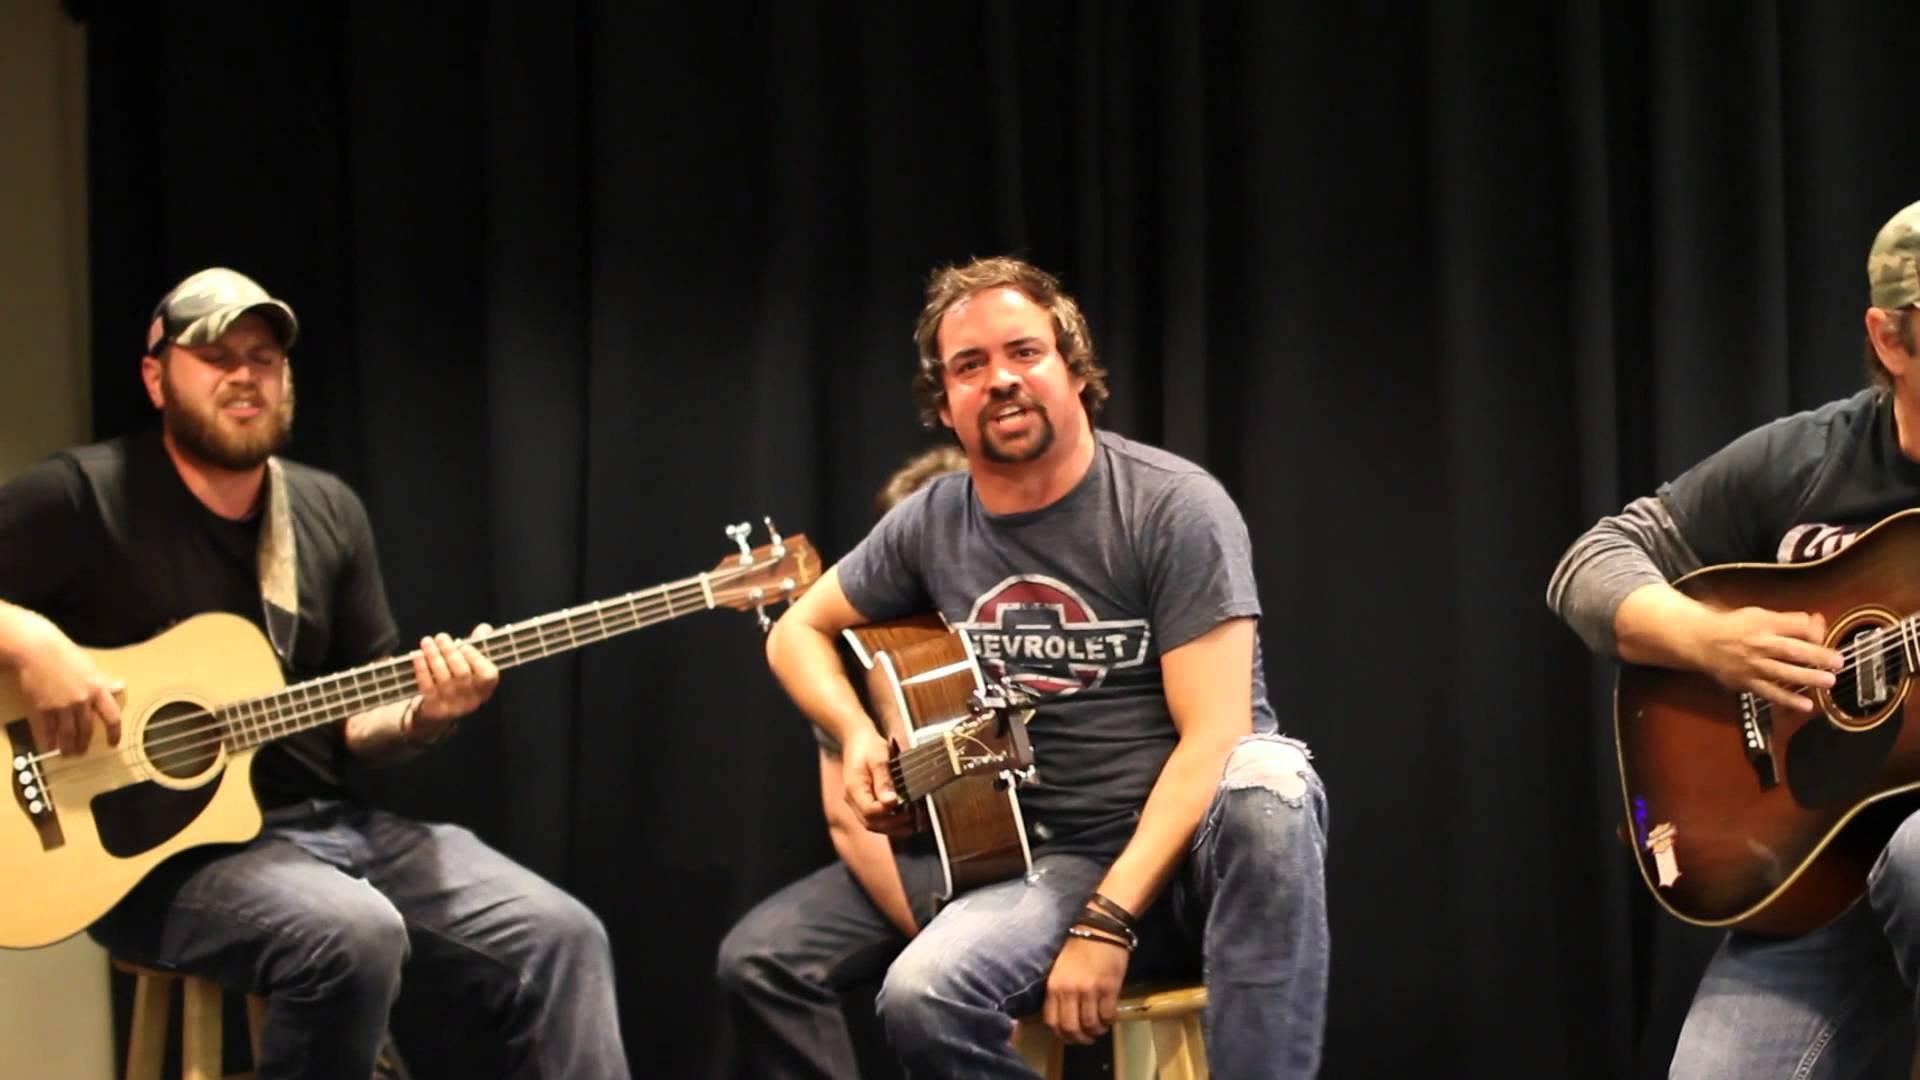 Davisson Brothers Band - Video Gallery - 008 - 2014